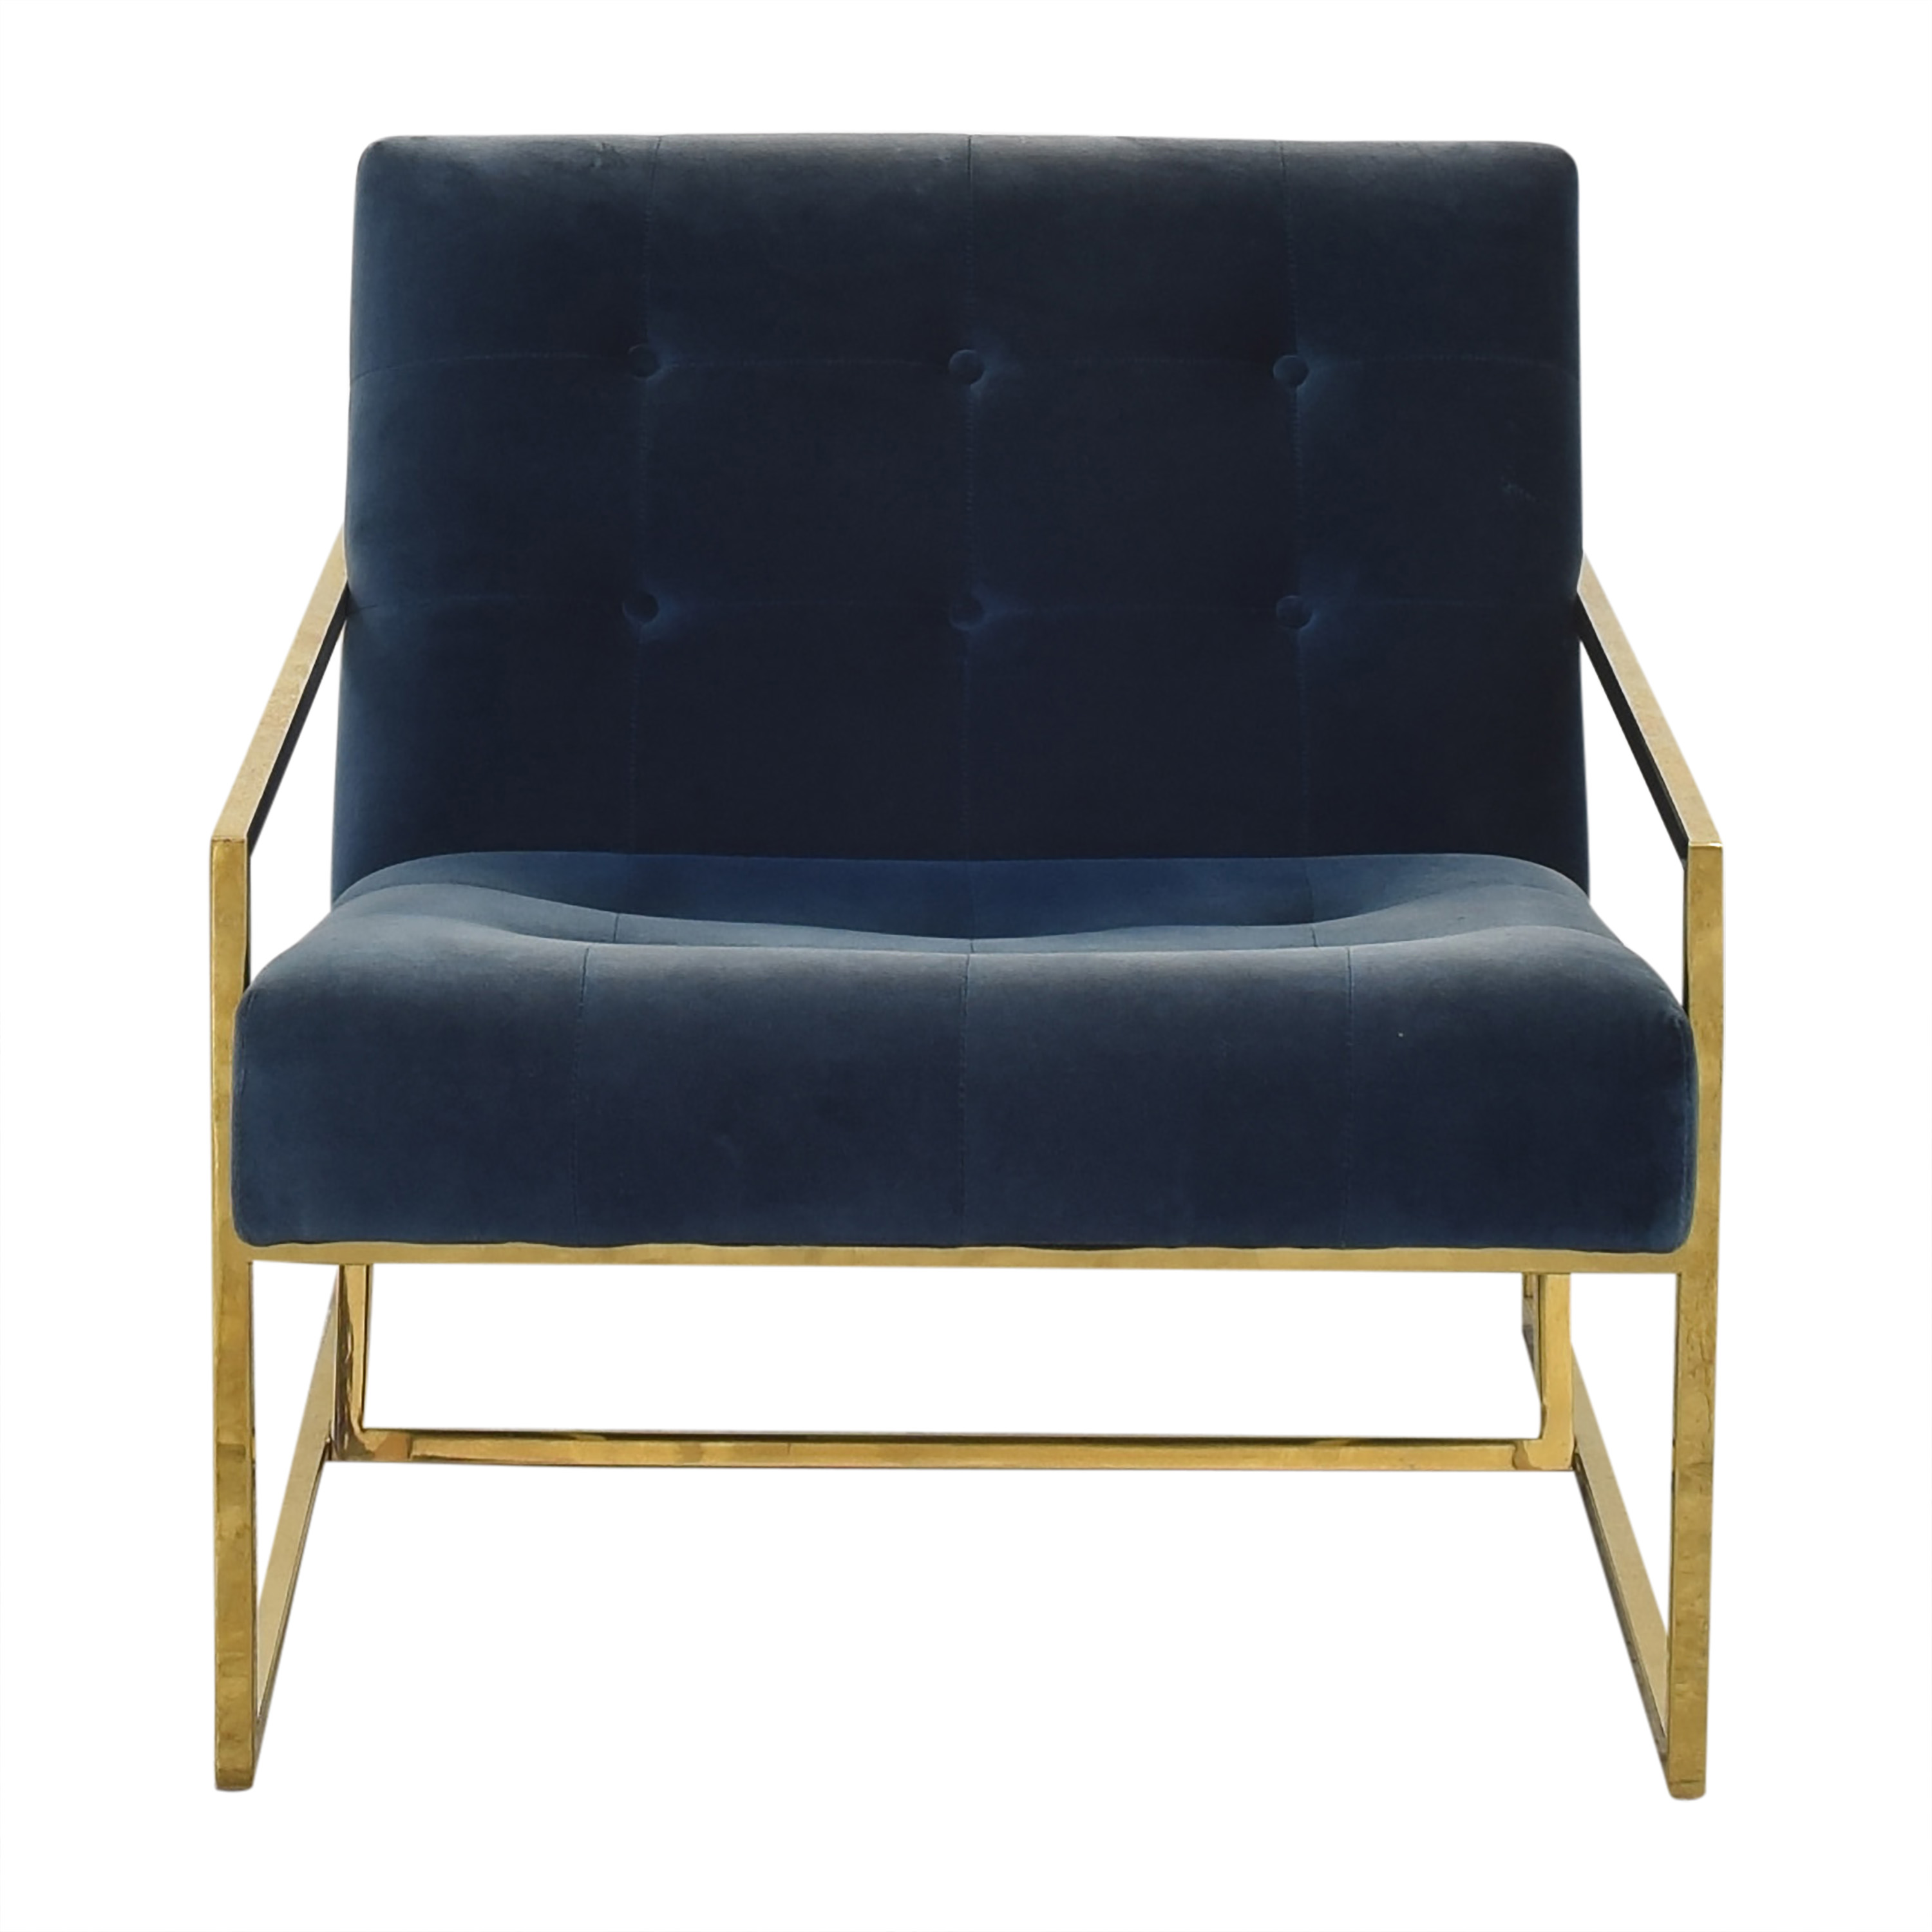 Jonathan Adler Goldfinger Lounge Chair / Accent Chairs